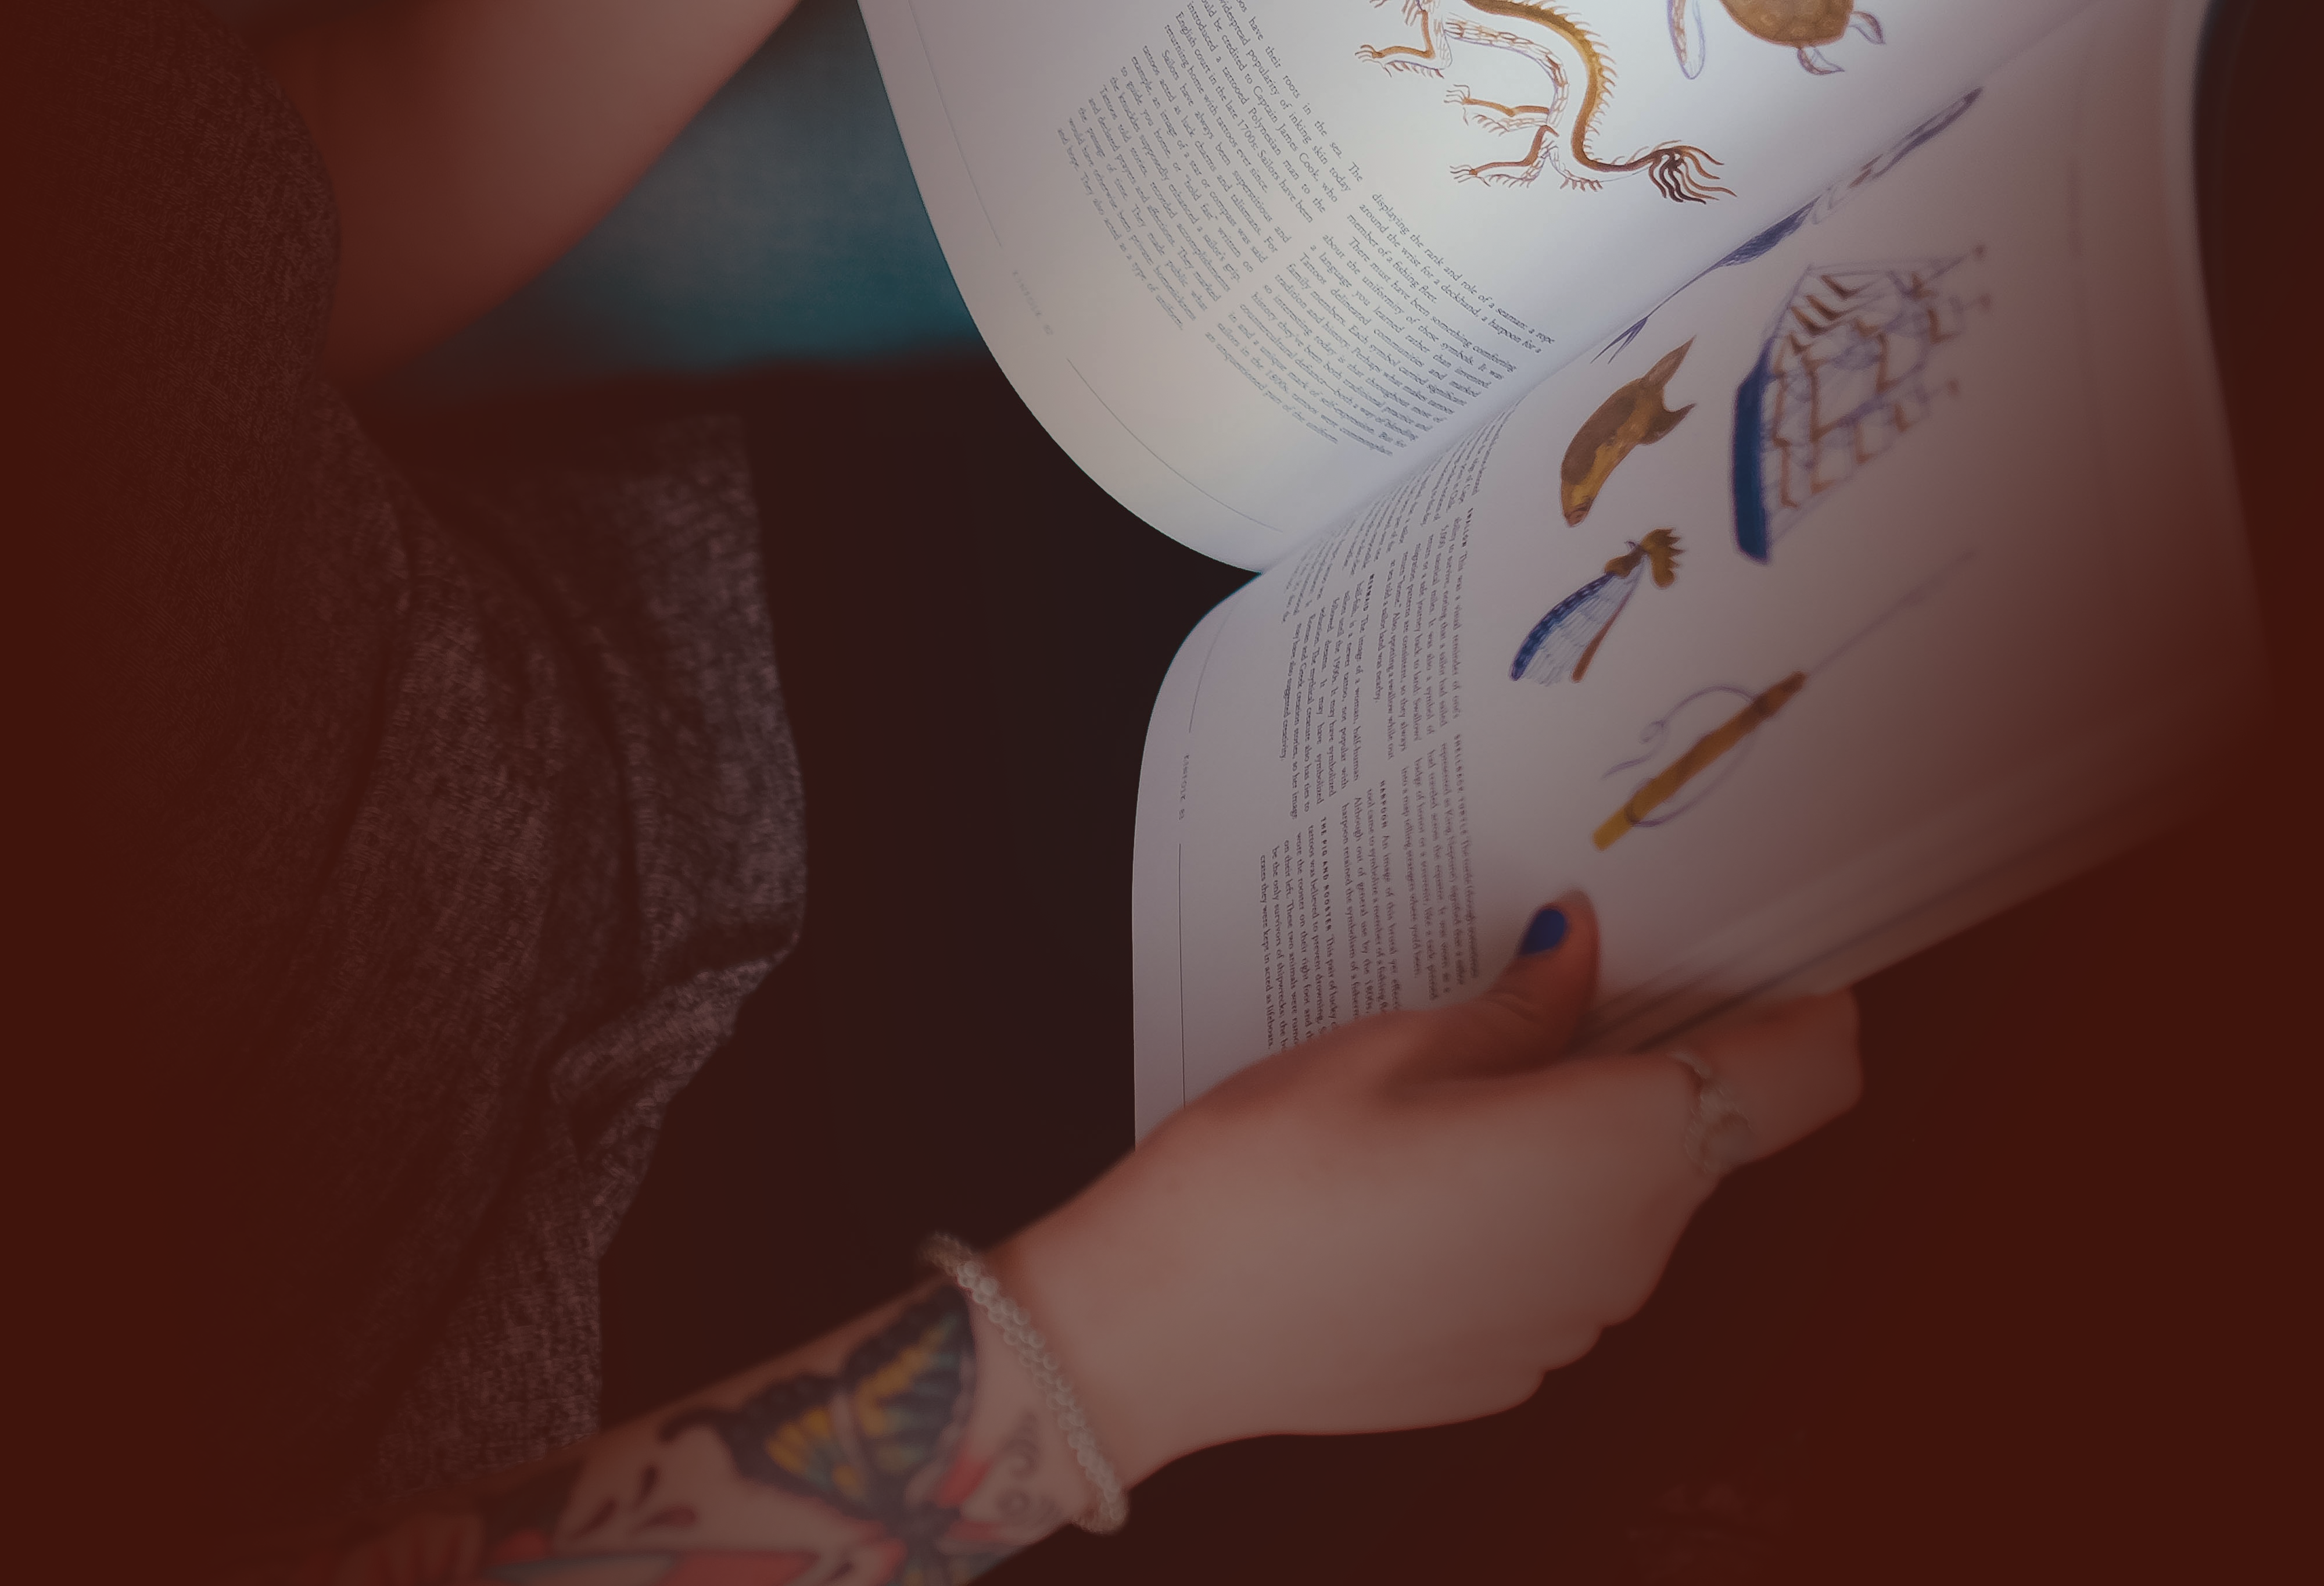 A person with arm tattoos and a bracelet holds a magazine open on their lap—only their lap is visible in the photo.